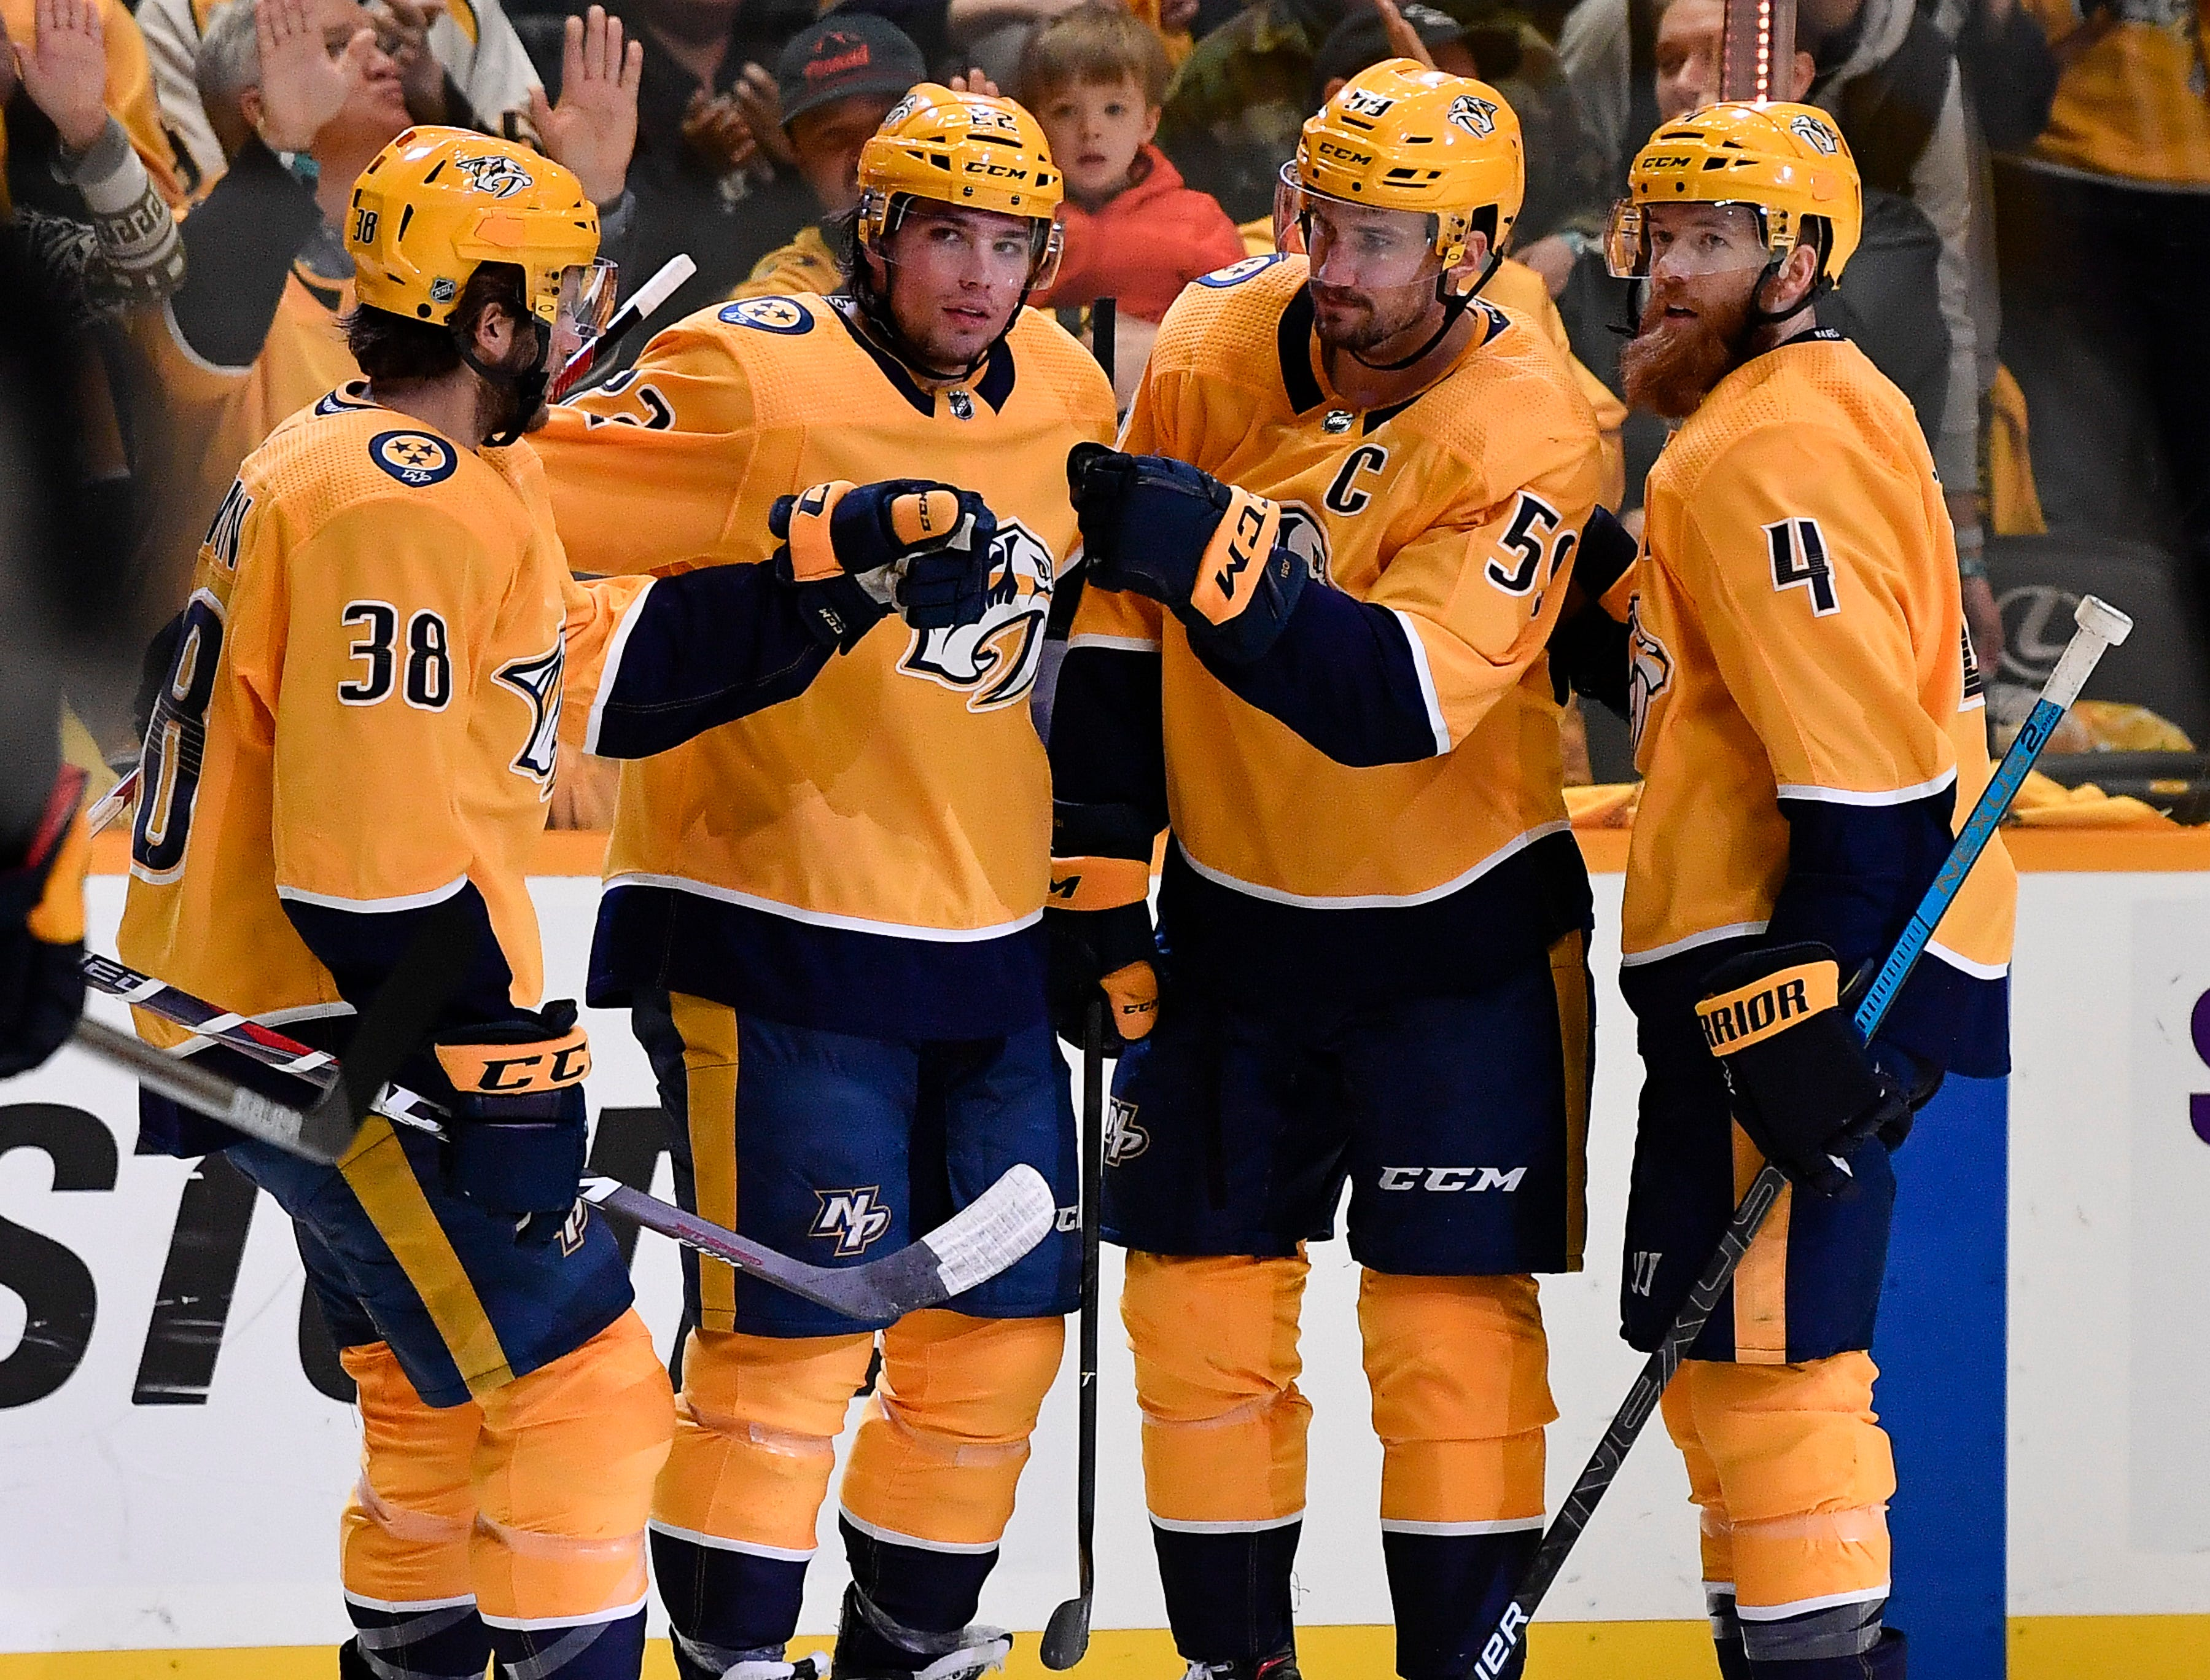 Predators defenseman Roman Josi (59) is congratulated after his goal against the Blues during the third period at Bridgestone Arena Sunday Feb. 10, 2019 in Nashville, Tenn.